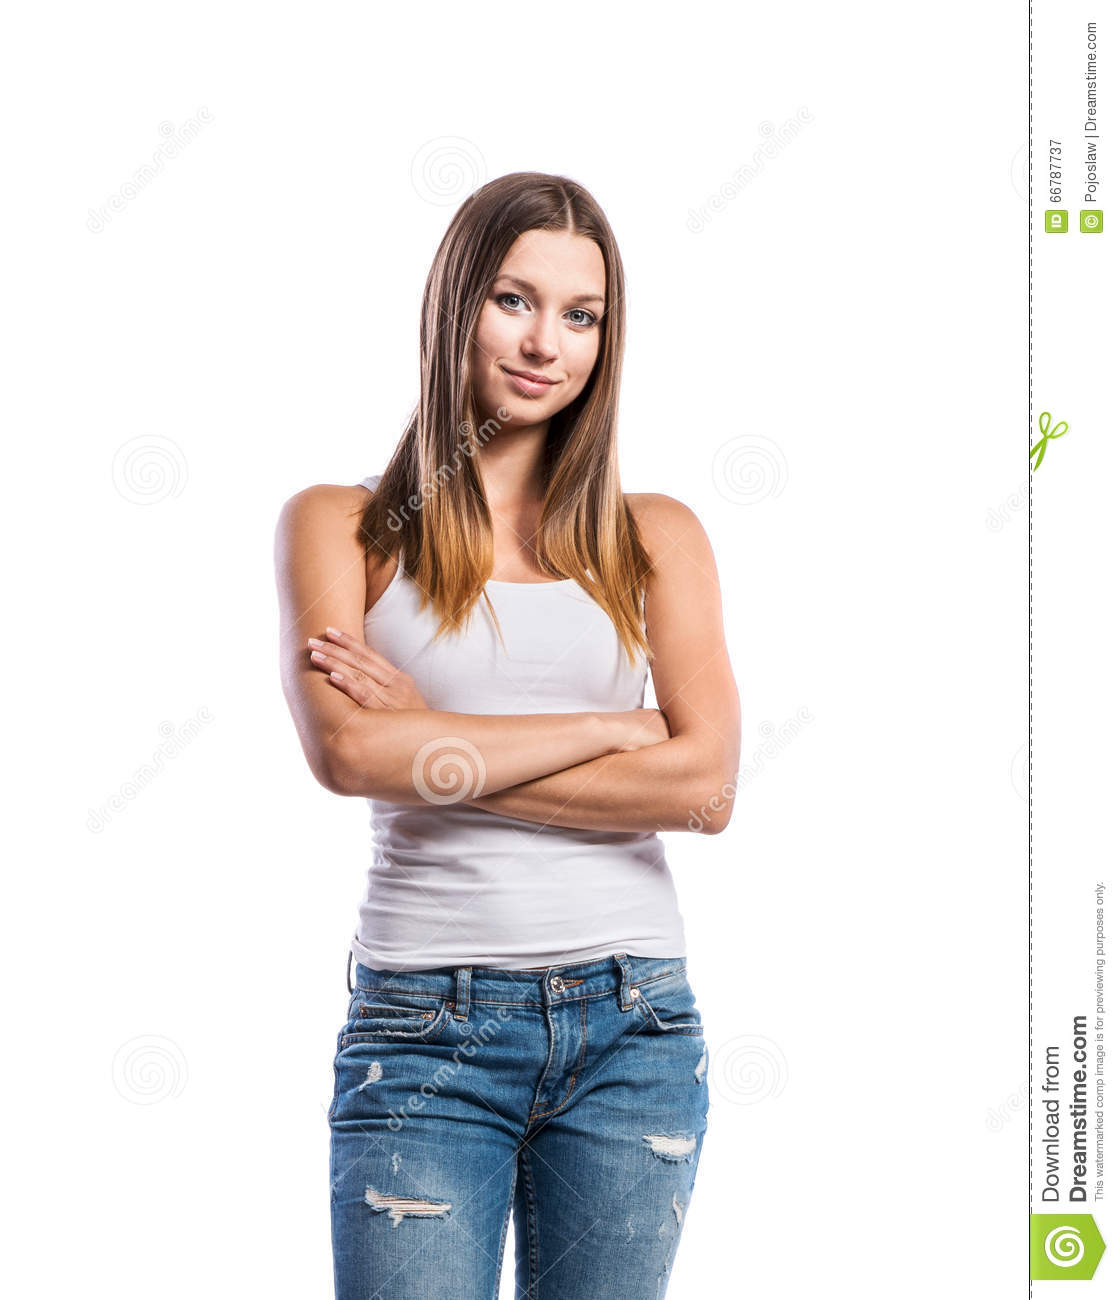 Standing Teenage Girl In Jeans And White Singlet Isolated Stock Photo - Image 66787737